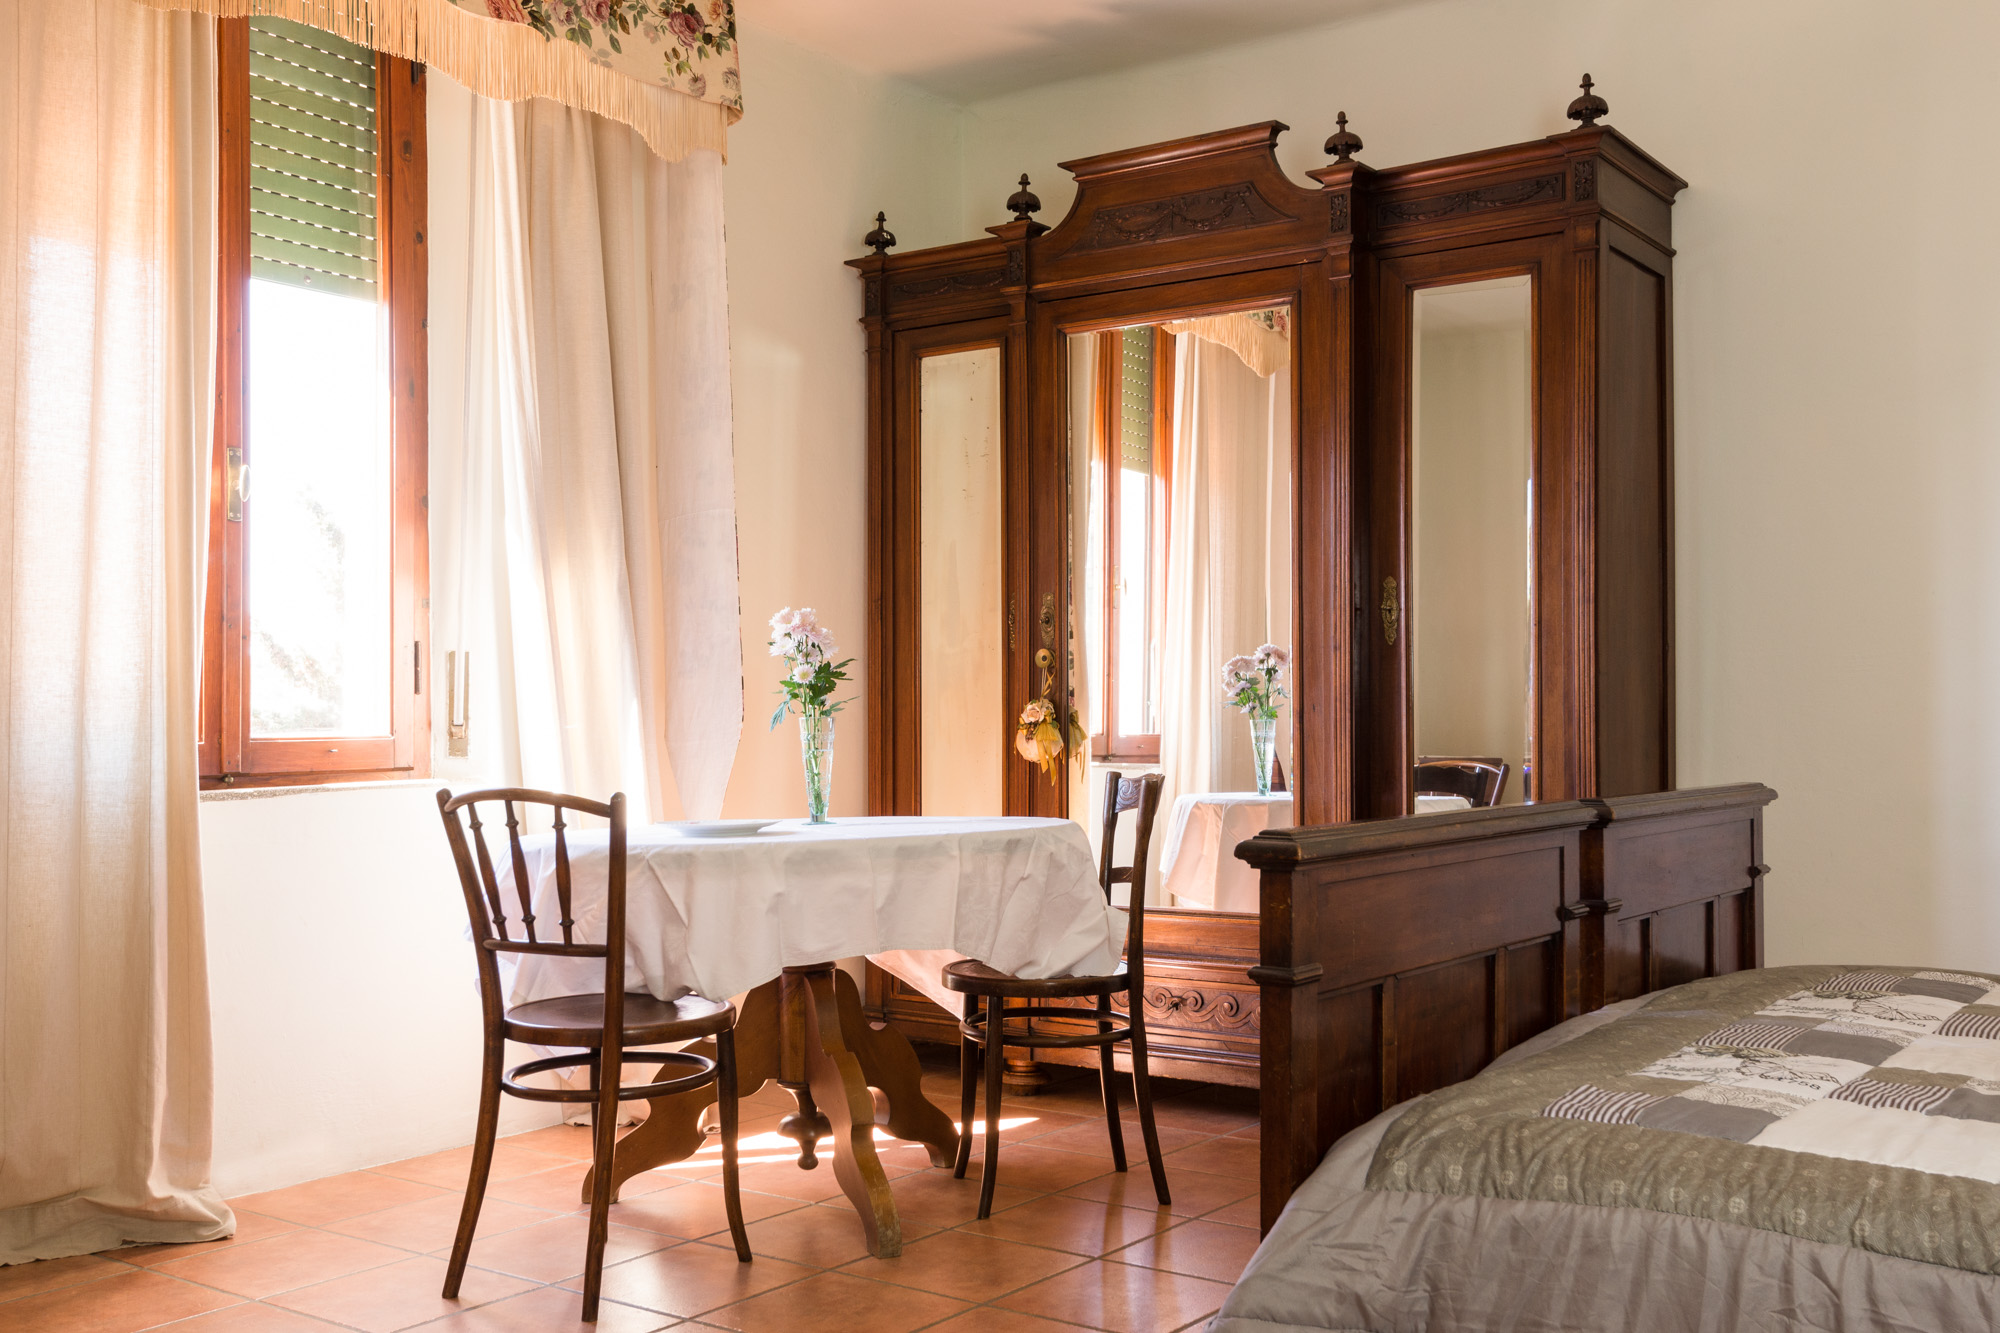 Bed and breakfast Venturina Terme